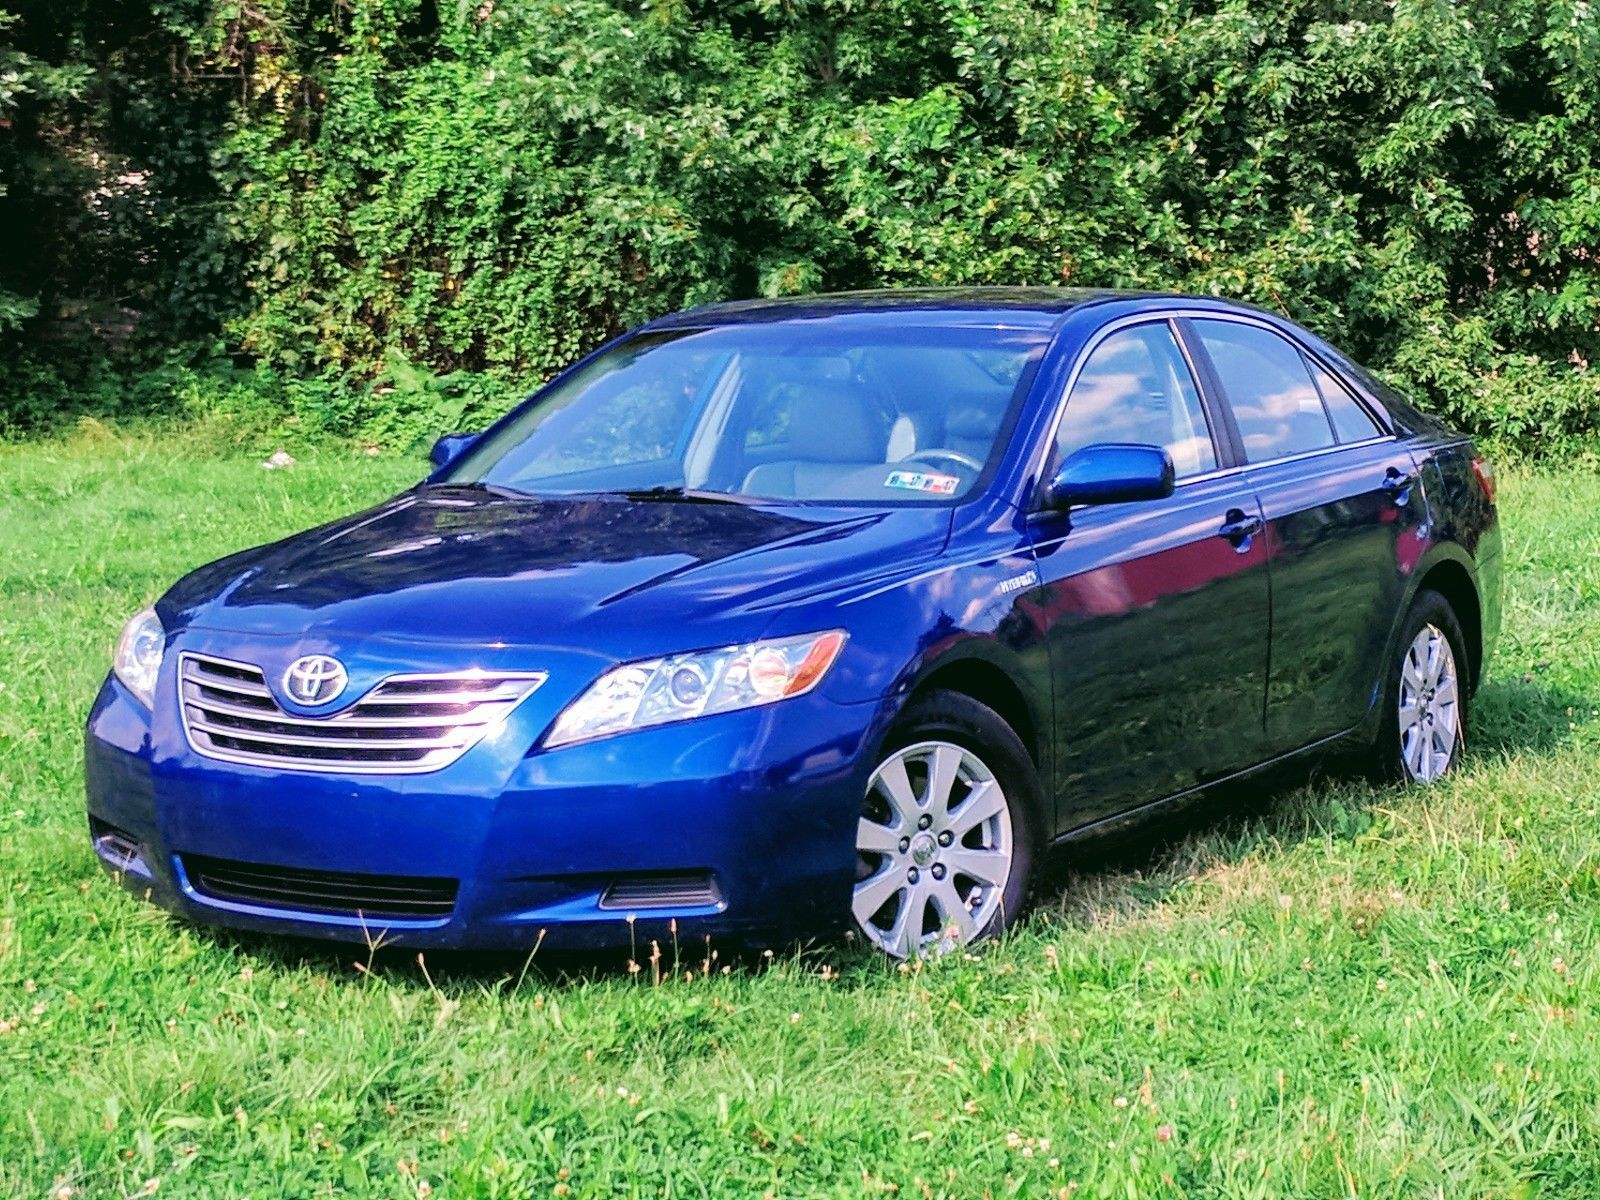 Lovely Cool Toyota 2017: 2009 Toyota Camry Hybrid NO RESERVE! 34 MPG! 1